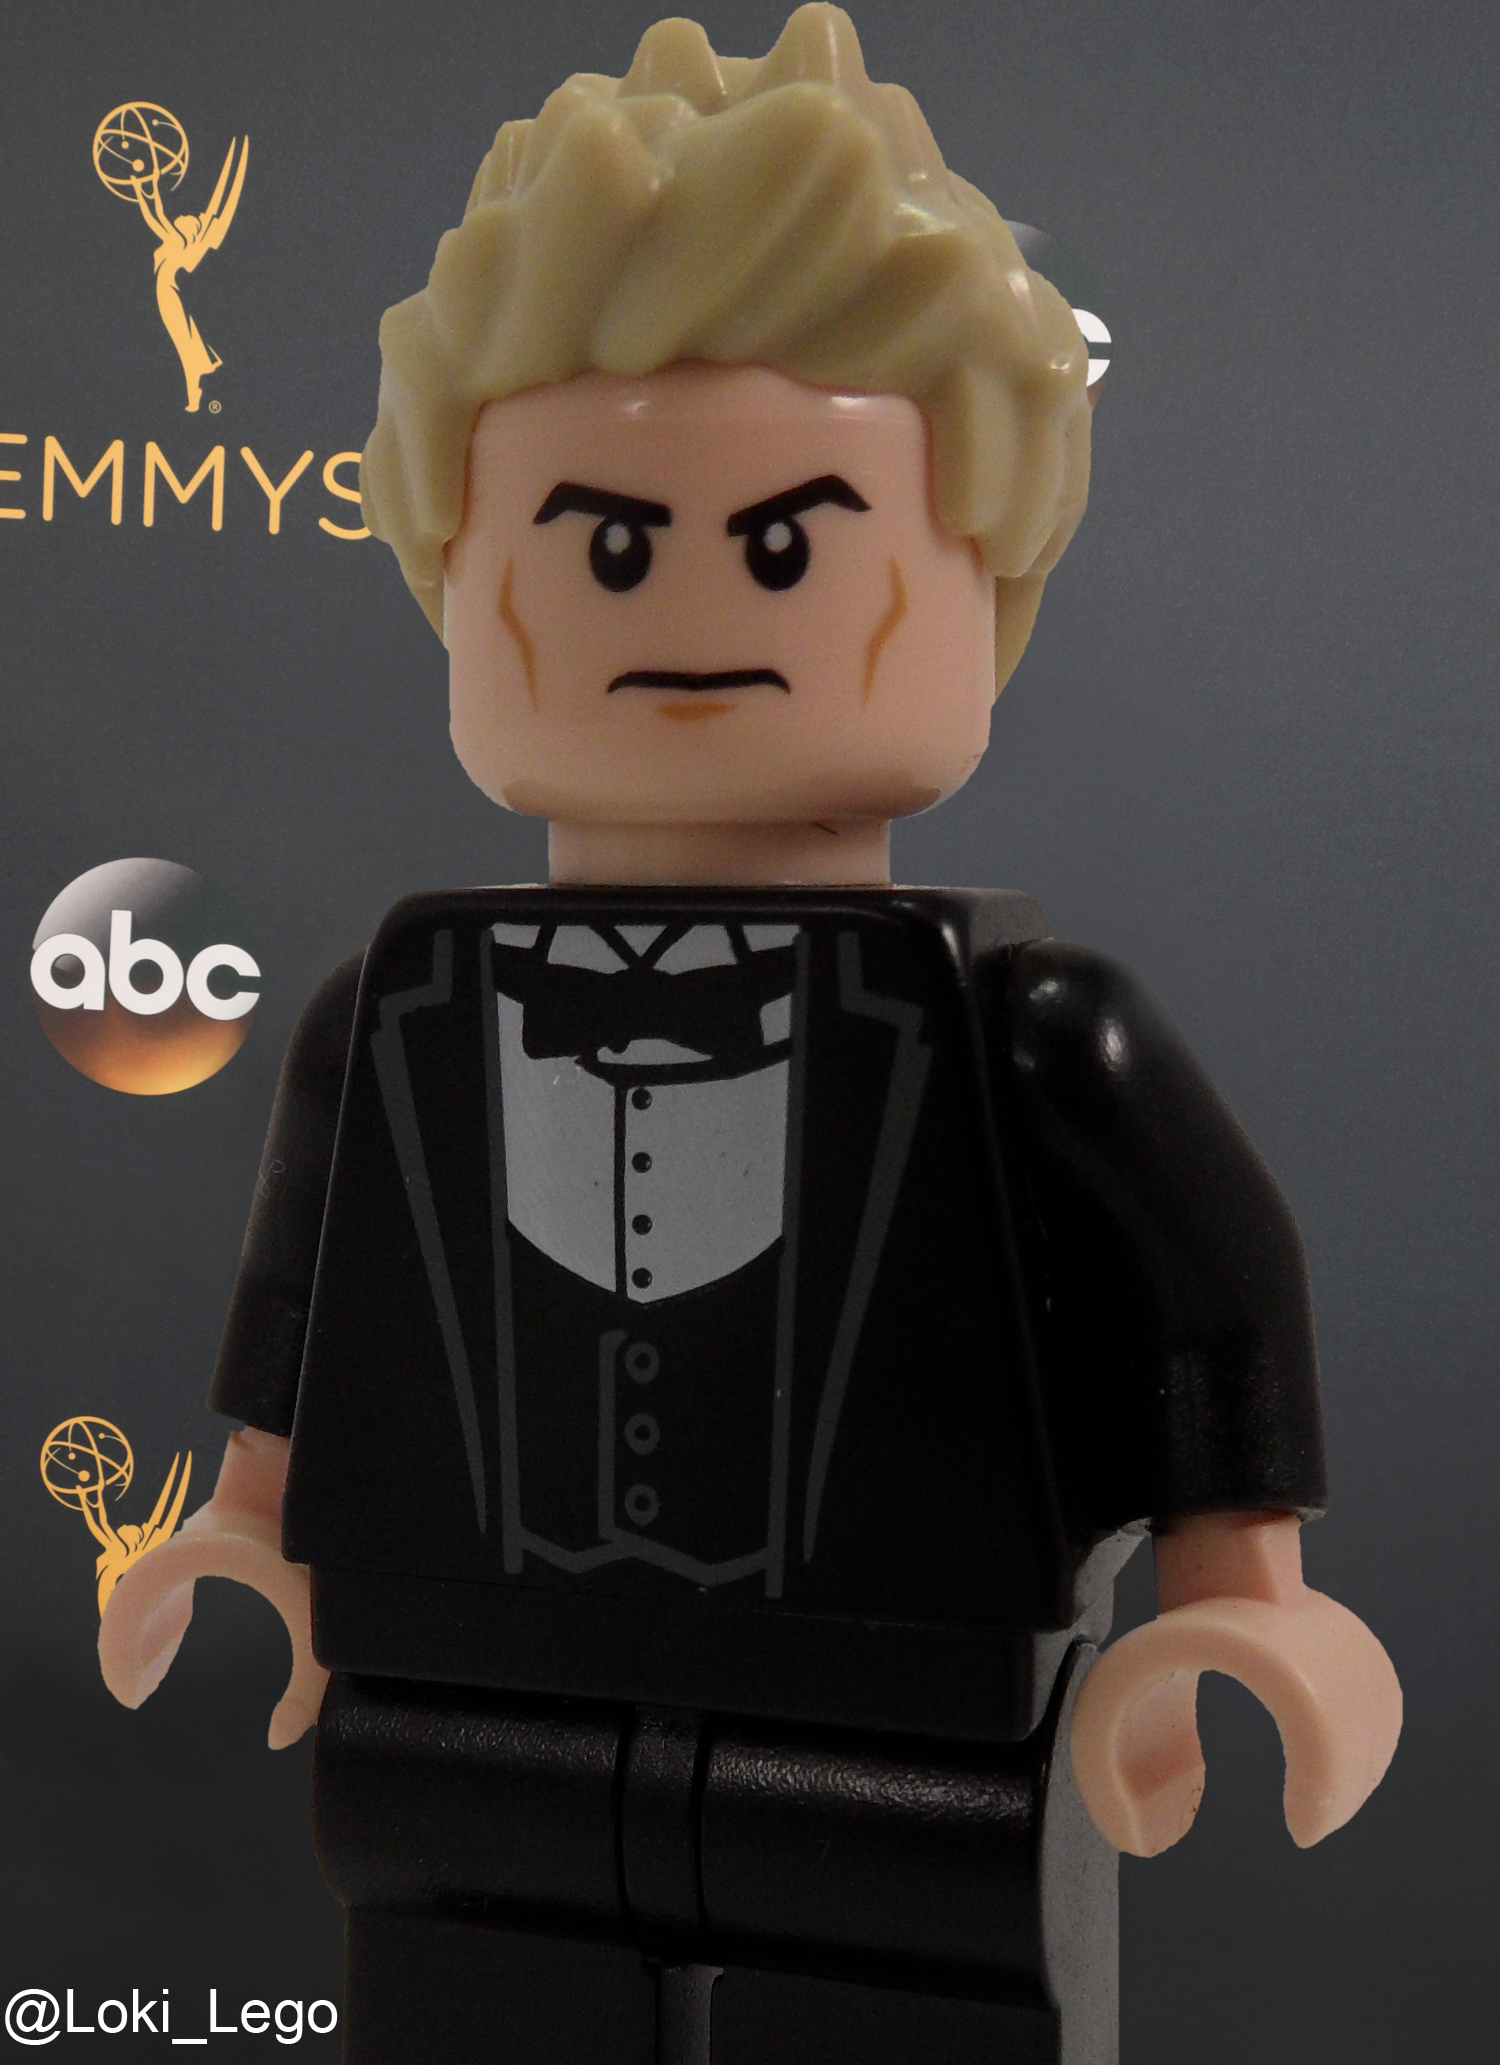 emmys-rc-2